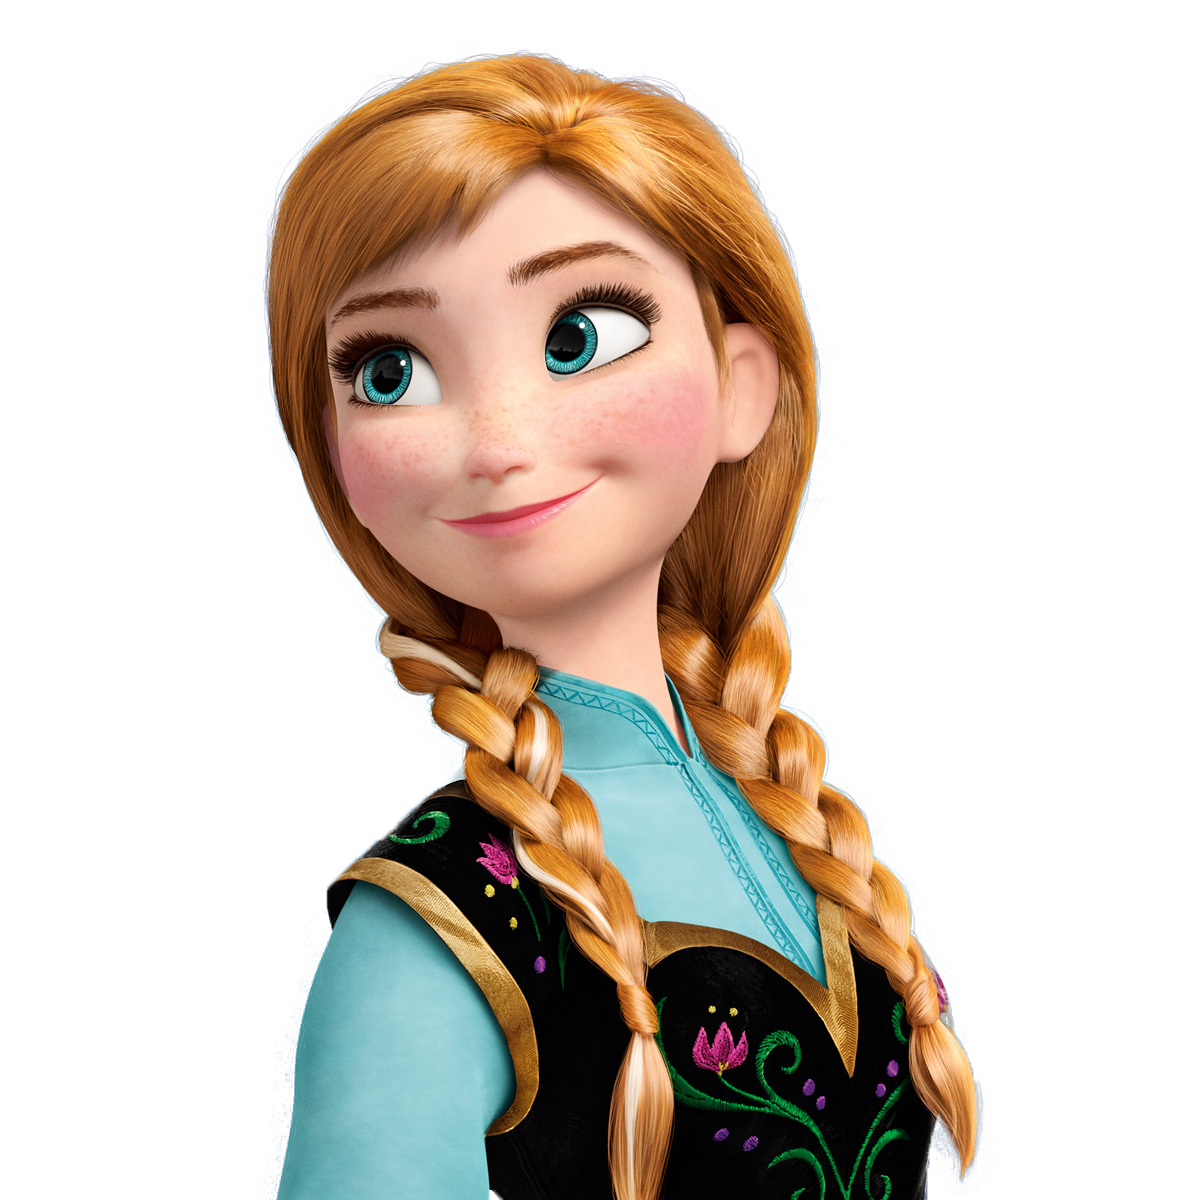 Free Anna Frozen Png, Download Free Clip Art, Free Clip Art.